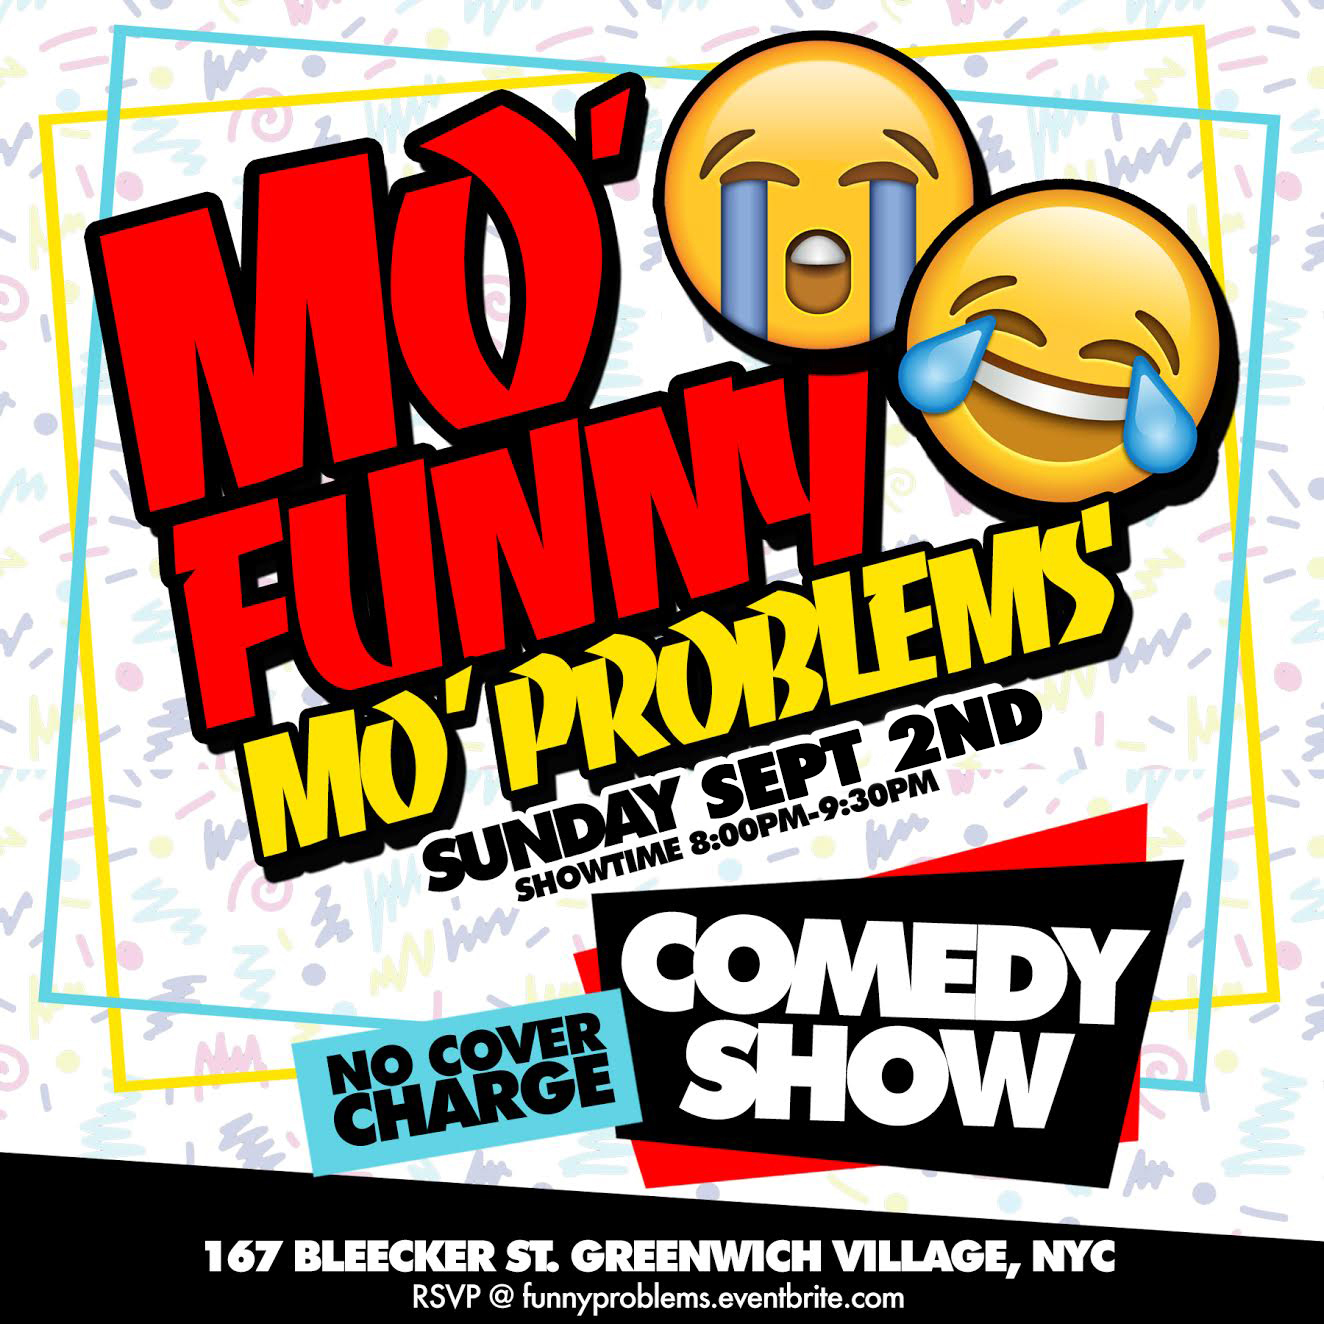 Mo Funny Mo Problems Sunday, Sept 2nd 8:oopm-1o:oopm The Lantern Comedy Club | 167 Bleecker St, | New York, NY 10012   Tickets